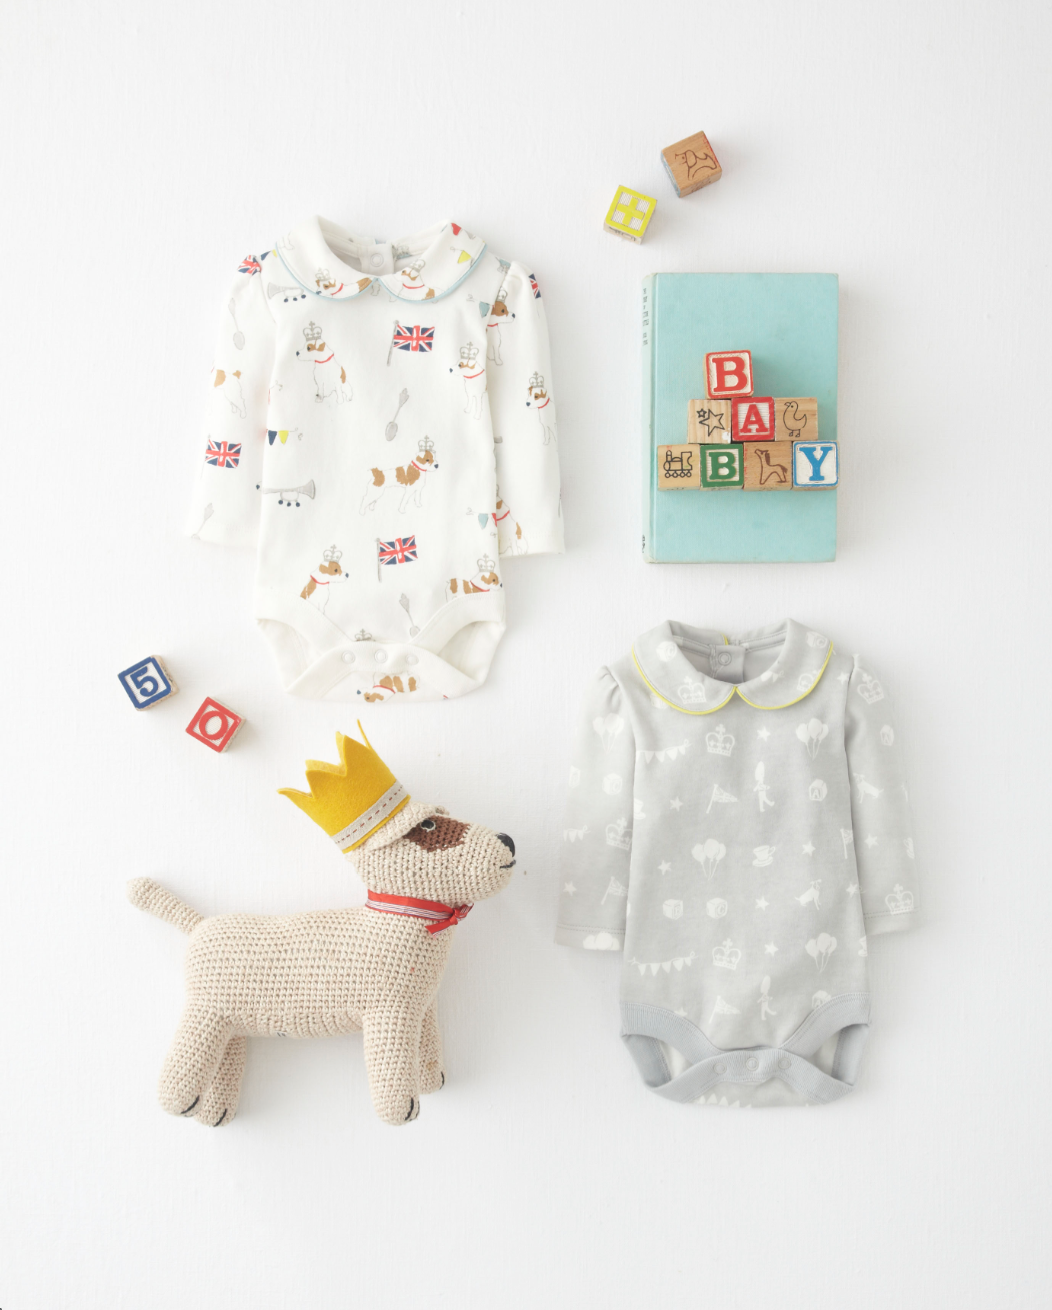 mamasVIB | V. I. BABY: Stylish ways to celebrate the arrival of the Royal Baby  | royal baby | royal | duke and duchess of cmabridge | kate middleton | prince george | new baby | royal baby | marsk and spencer | limited edition biscuit tin | miff and the royal baby | joules royal baby clothes | children salon | new royal birth | george | baby boy | baby girl | princess | kate | willima | prince william | pregnancy | royal news | stylish buys | shopping | mamasVIB | boden | boden royal bodysuits | boden baby